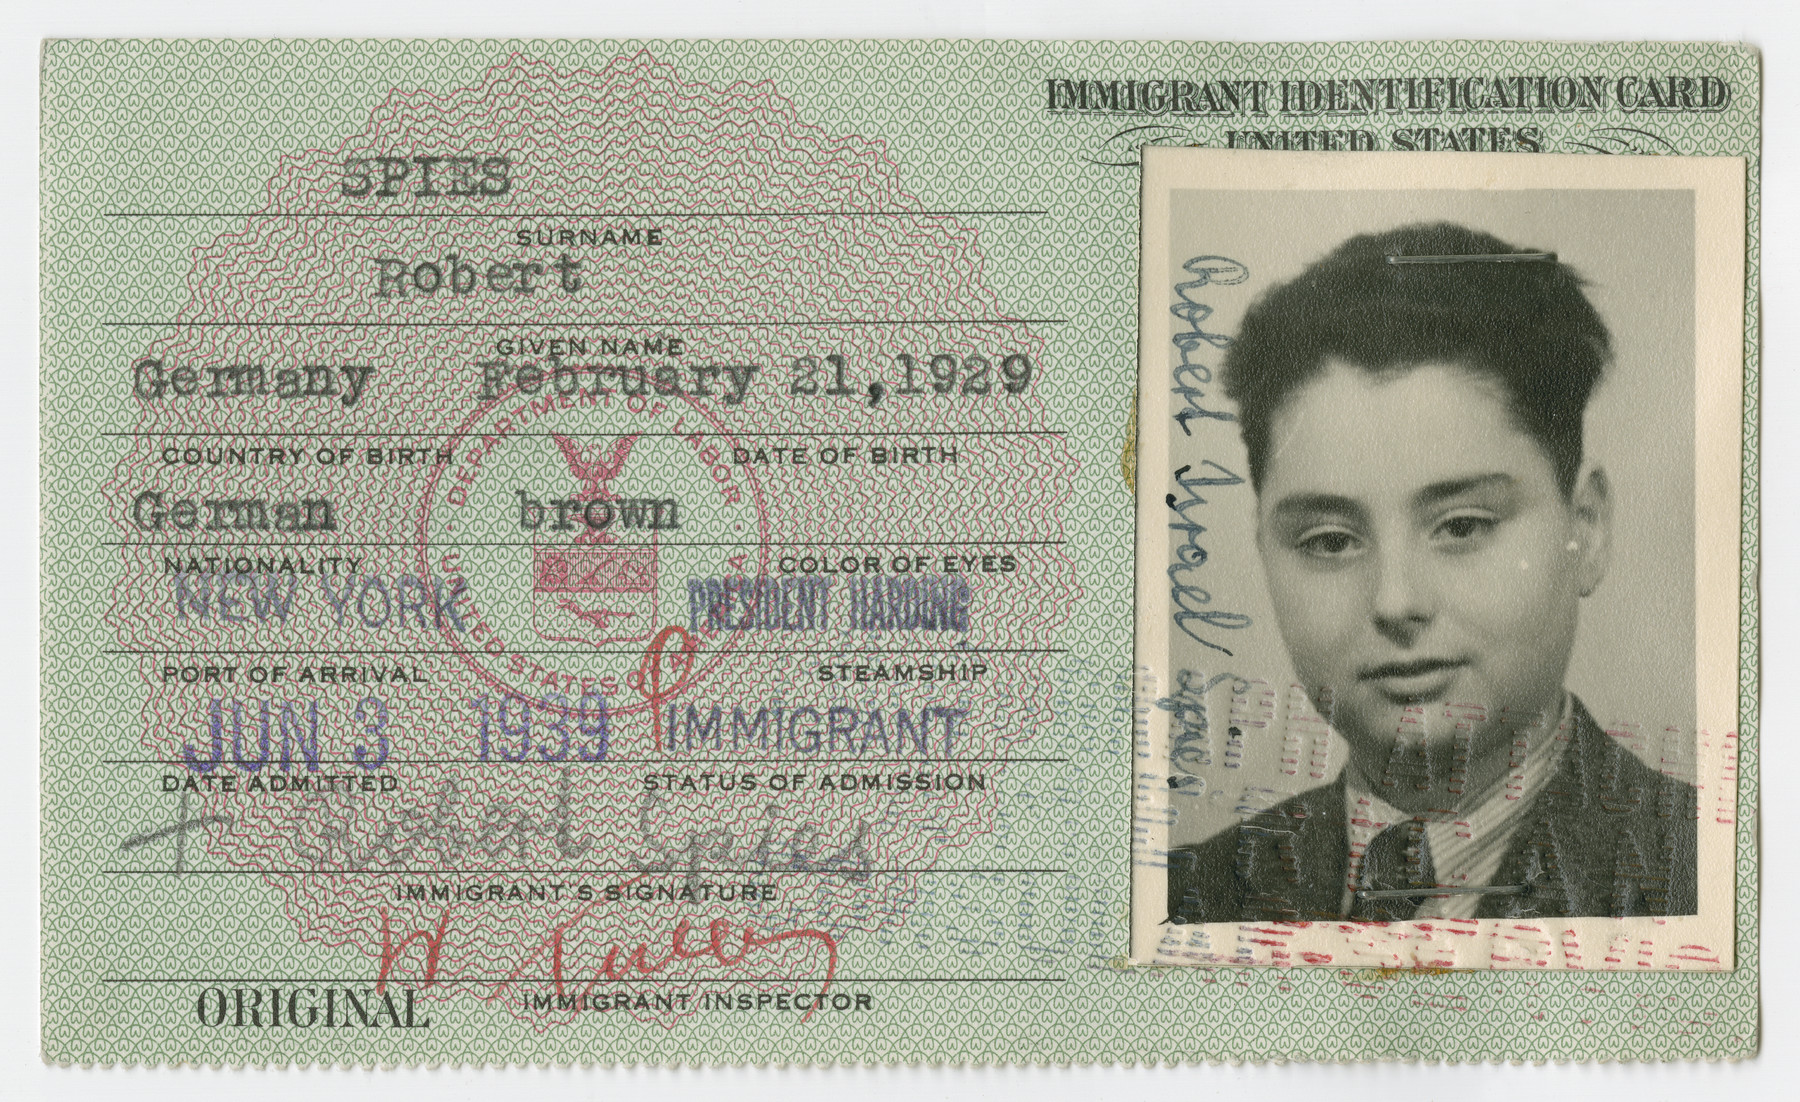 United States Immigrant Identification Card issued to Robert Spies.  It states he was born in Germany though he was born in Vienna.